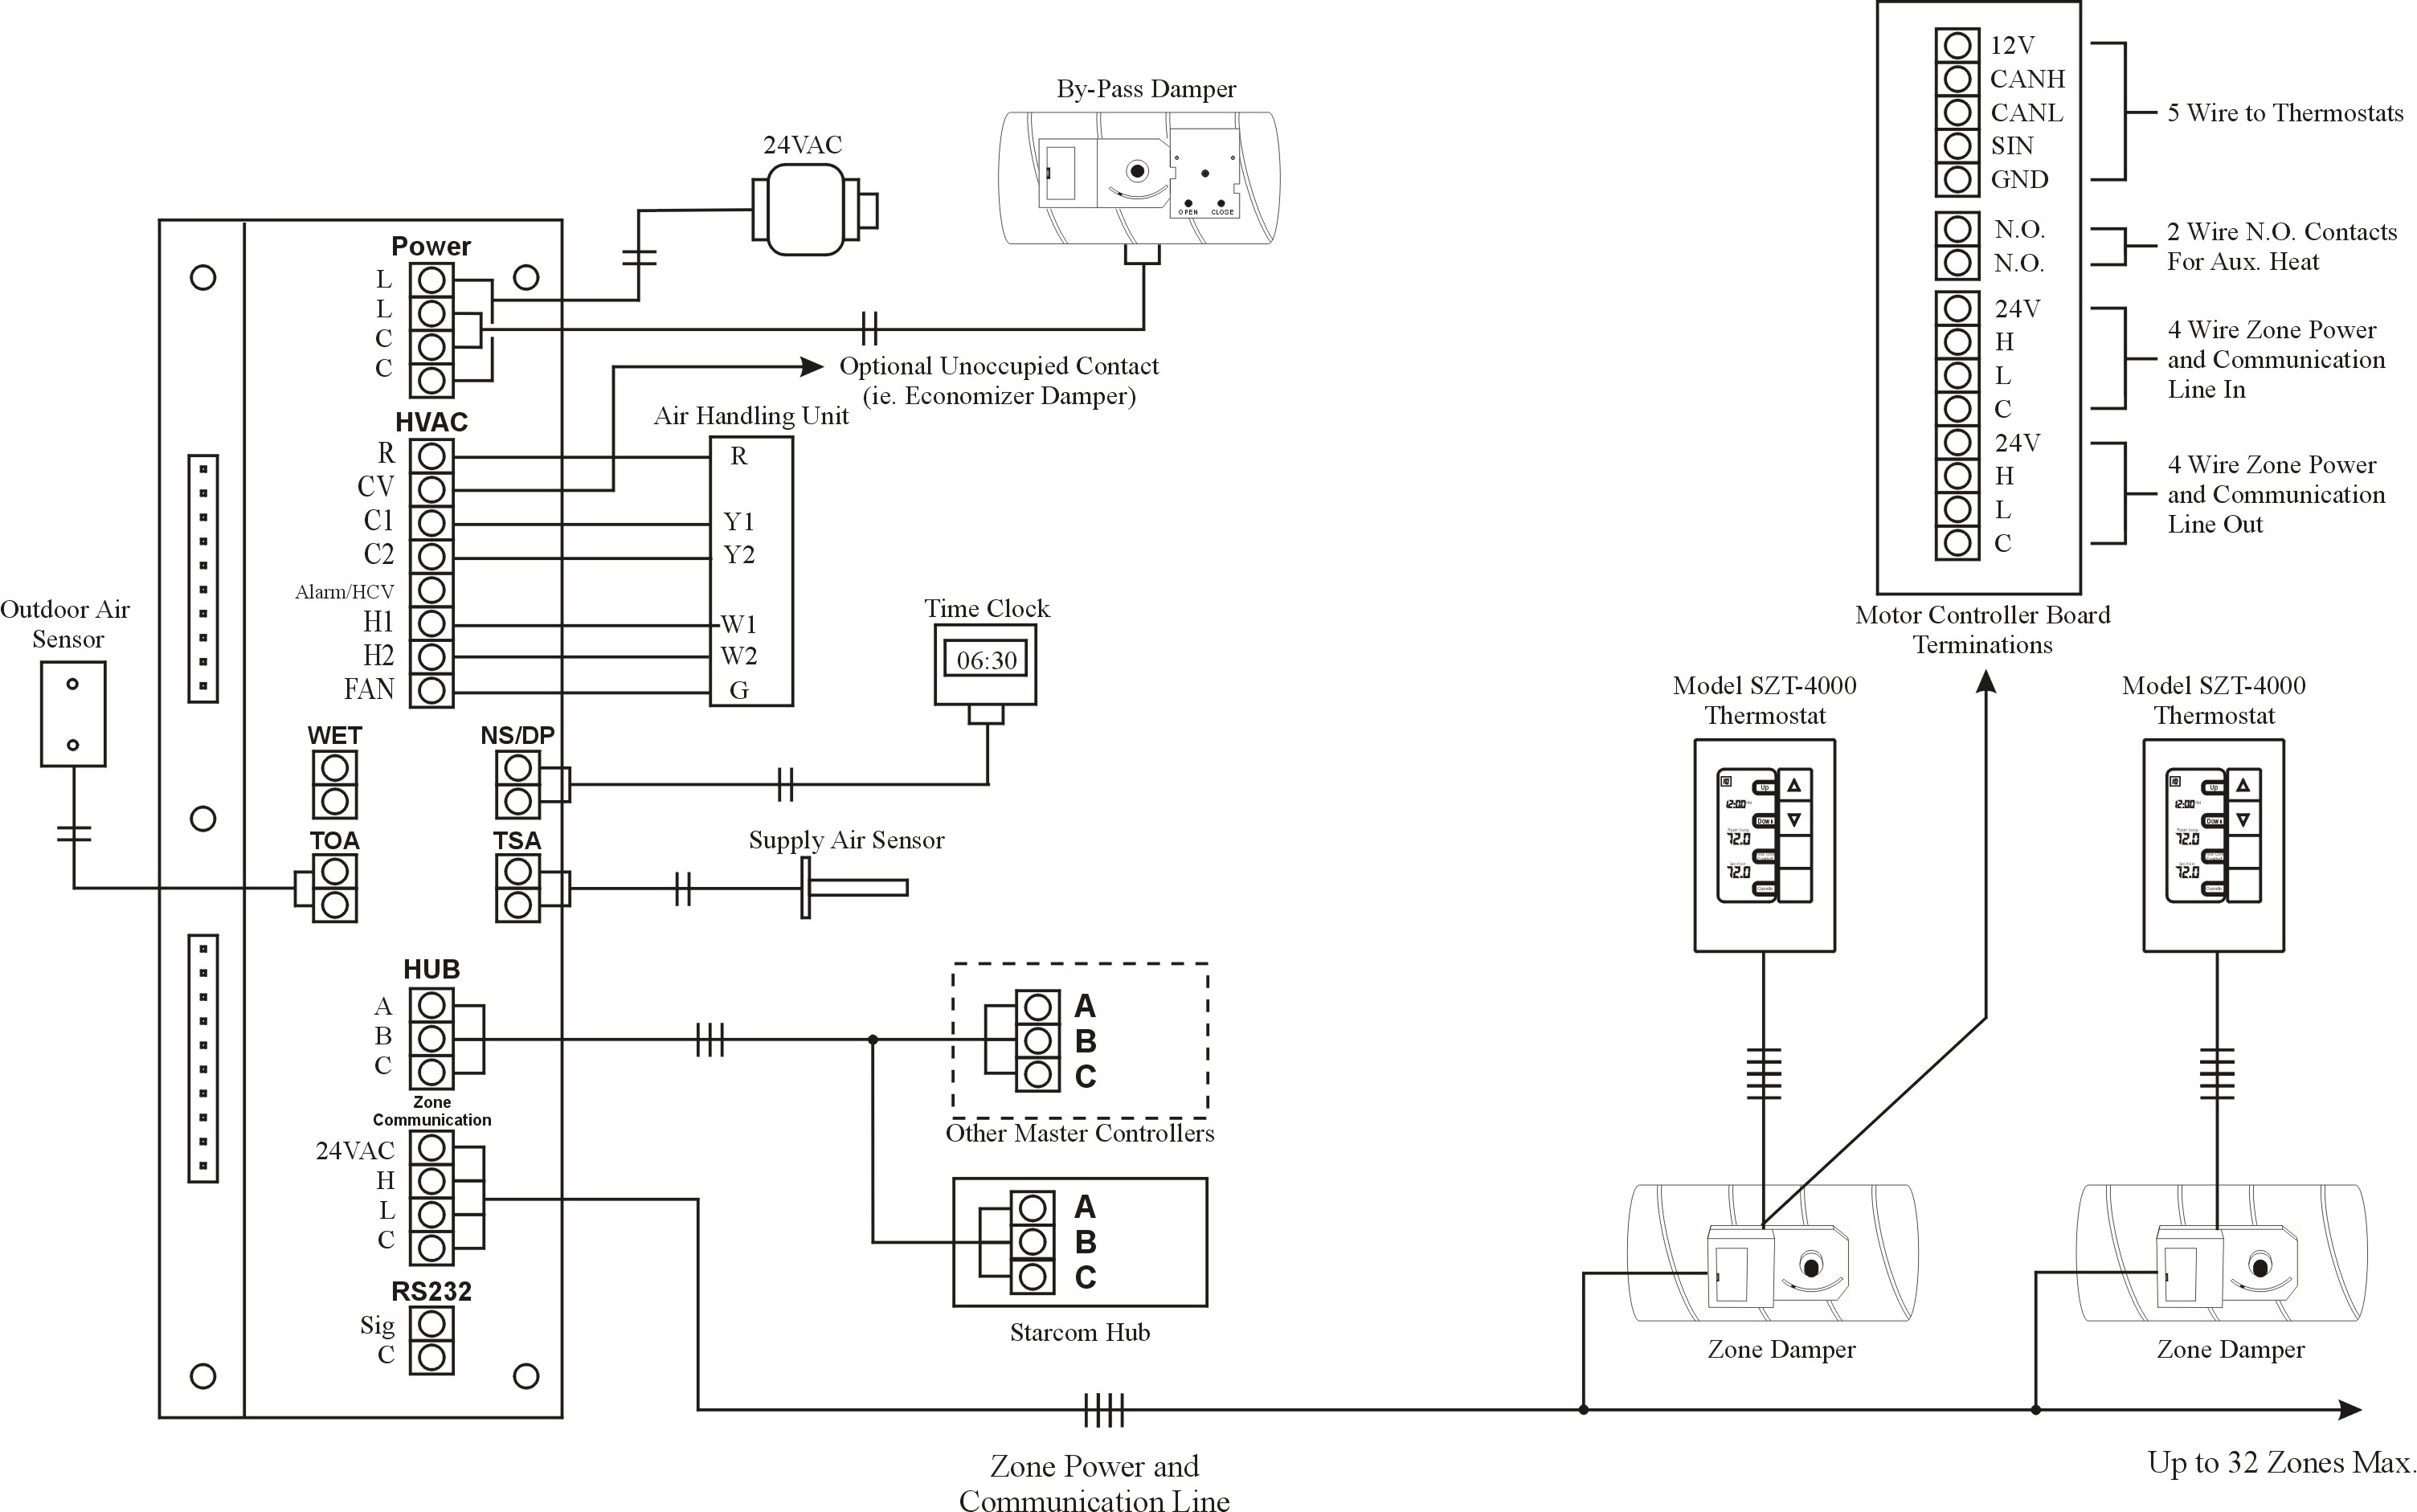 Fire Alarm Control Panel Circuit Diagram Fire Alarm